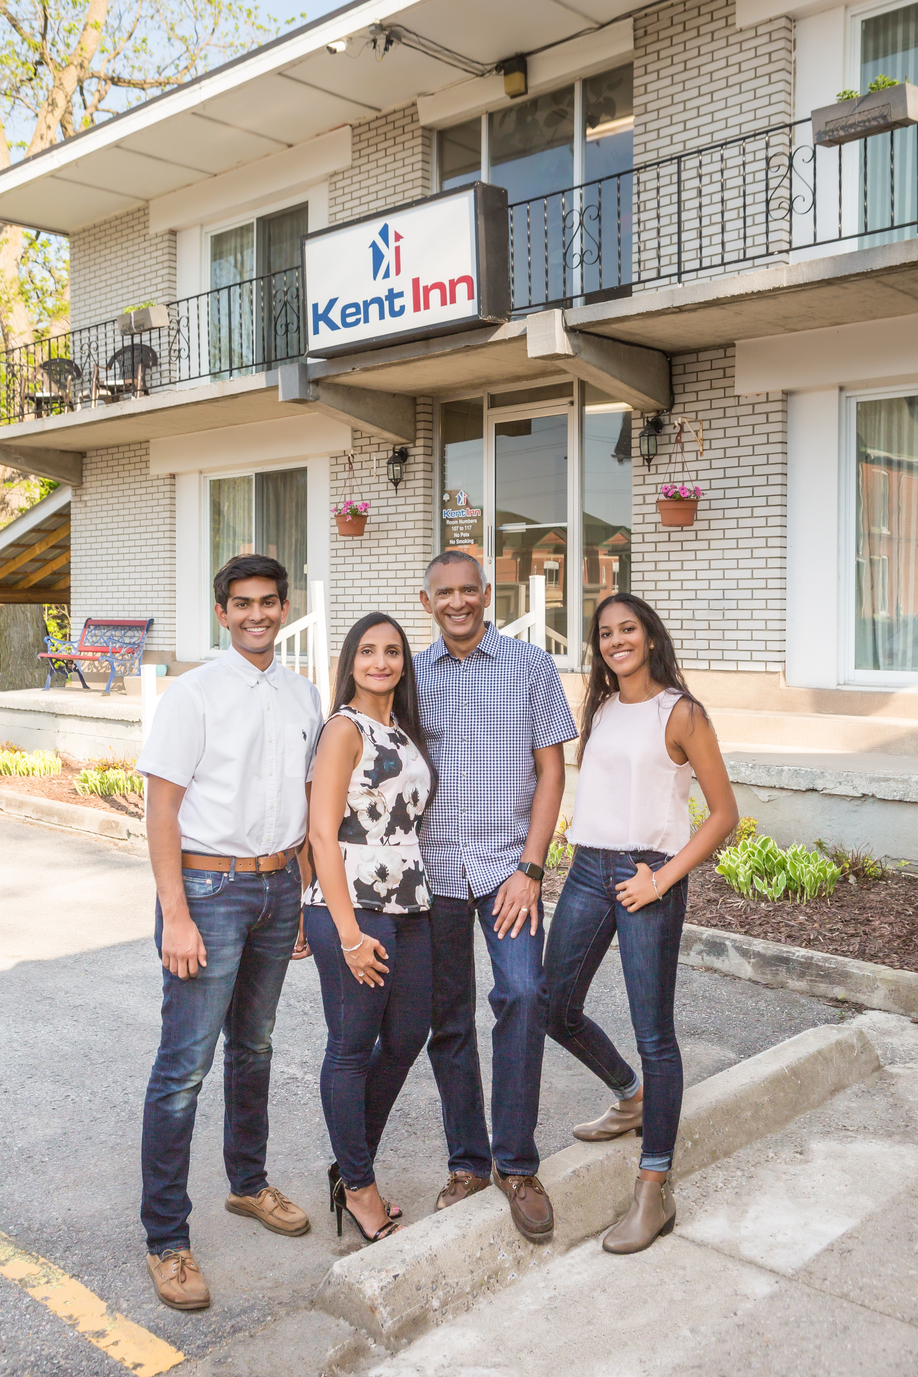 Patel family turns Kent Inn around and gives back to Lindsay community